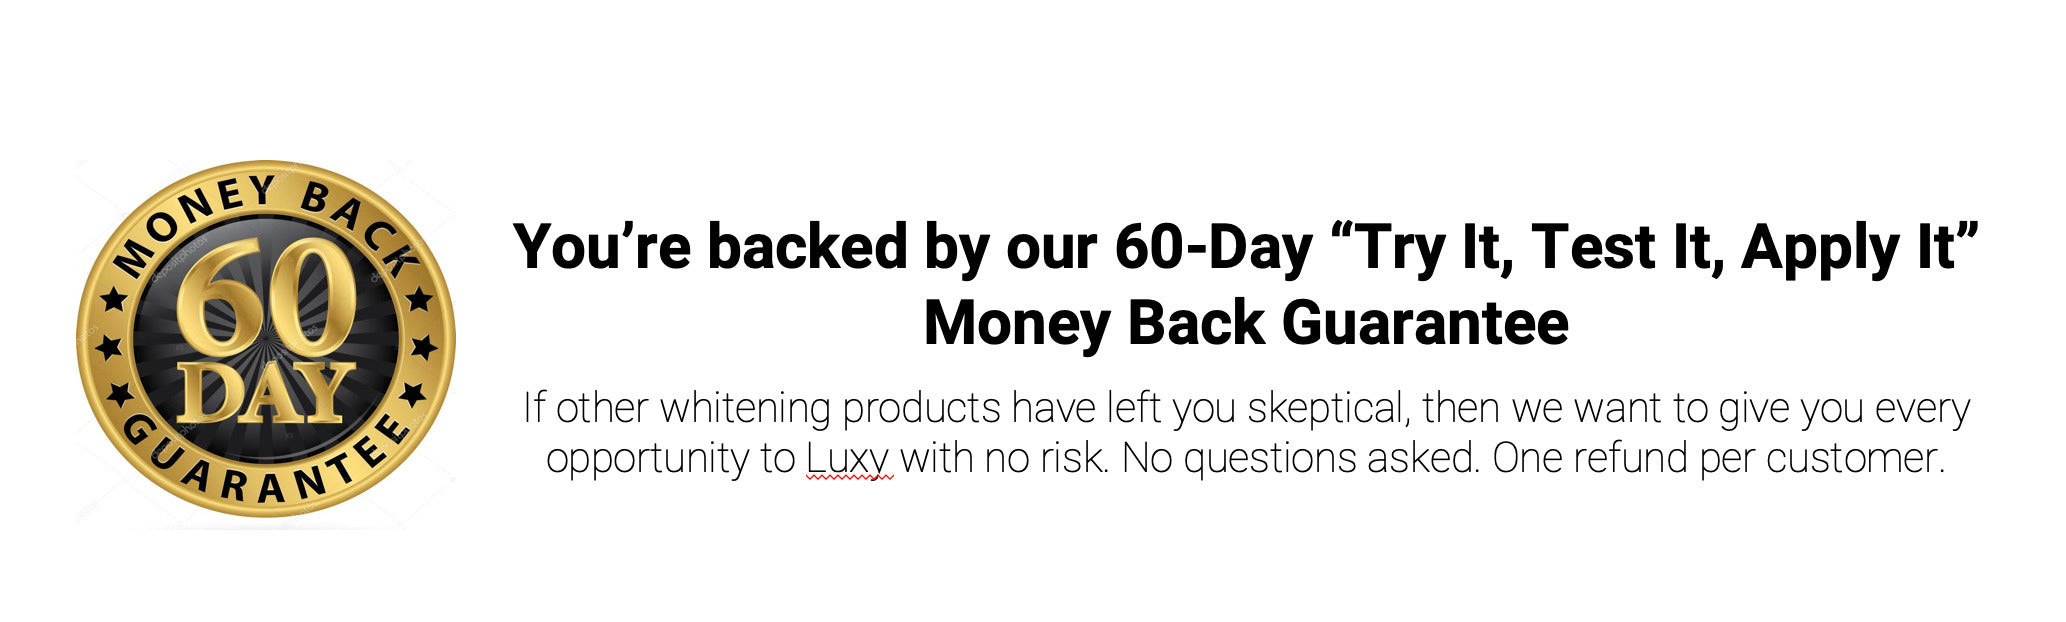 luxy 60 day guarantee